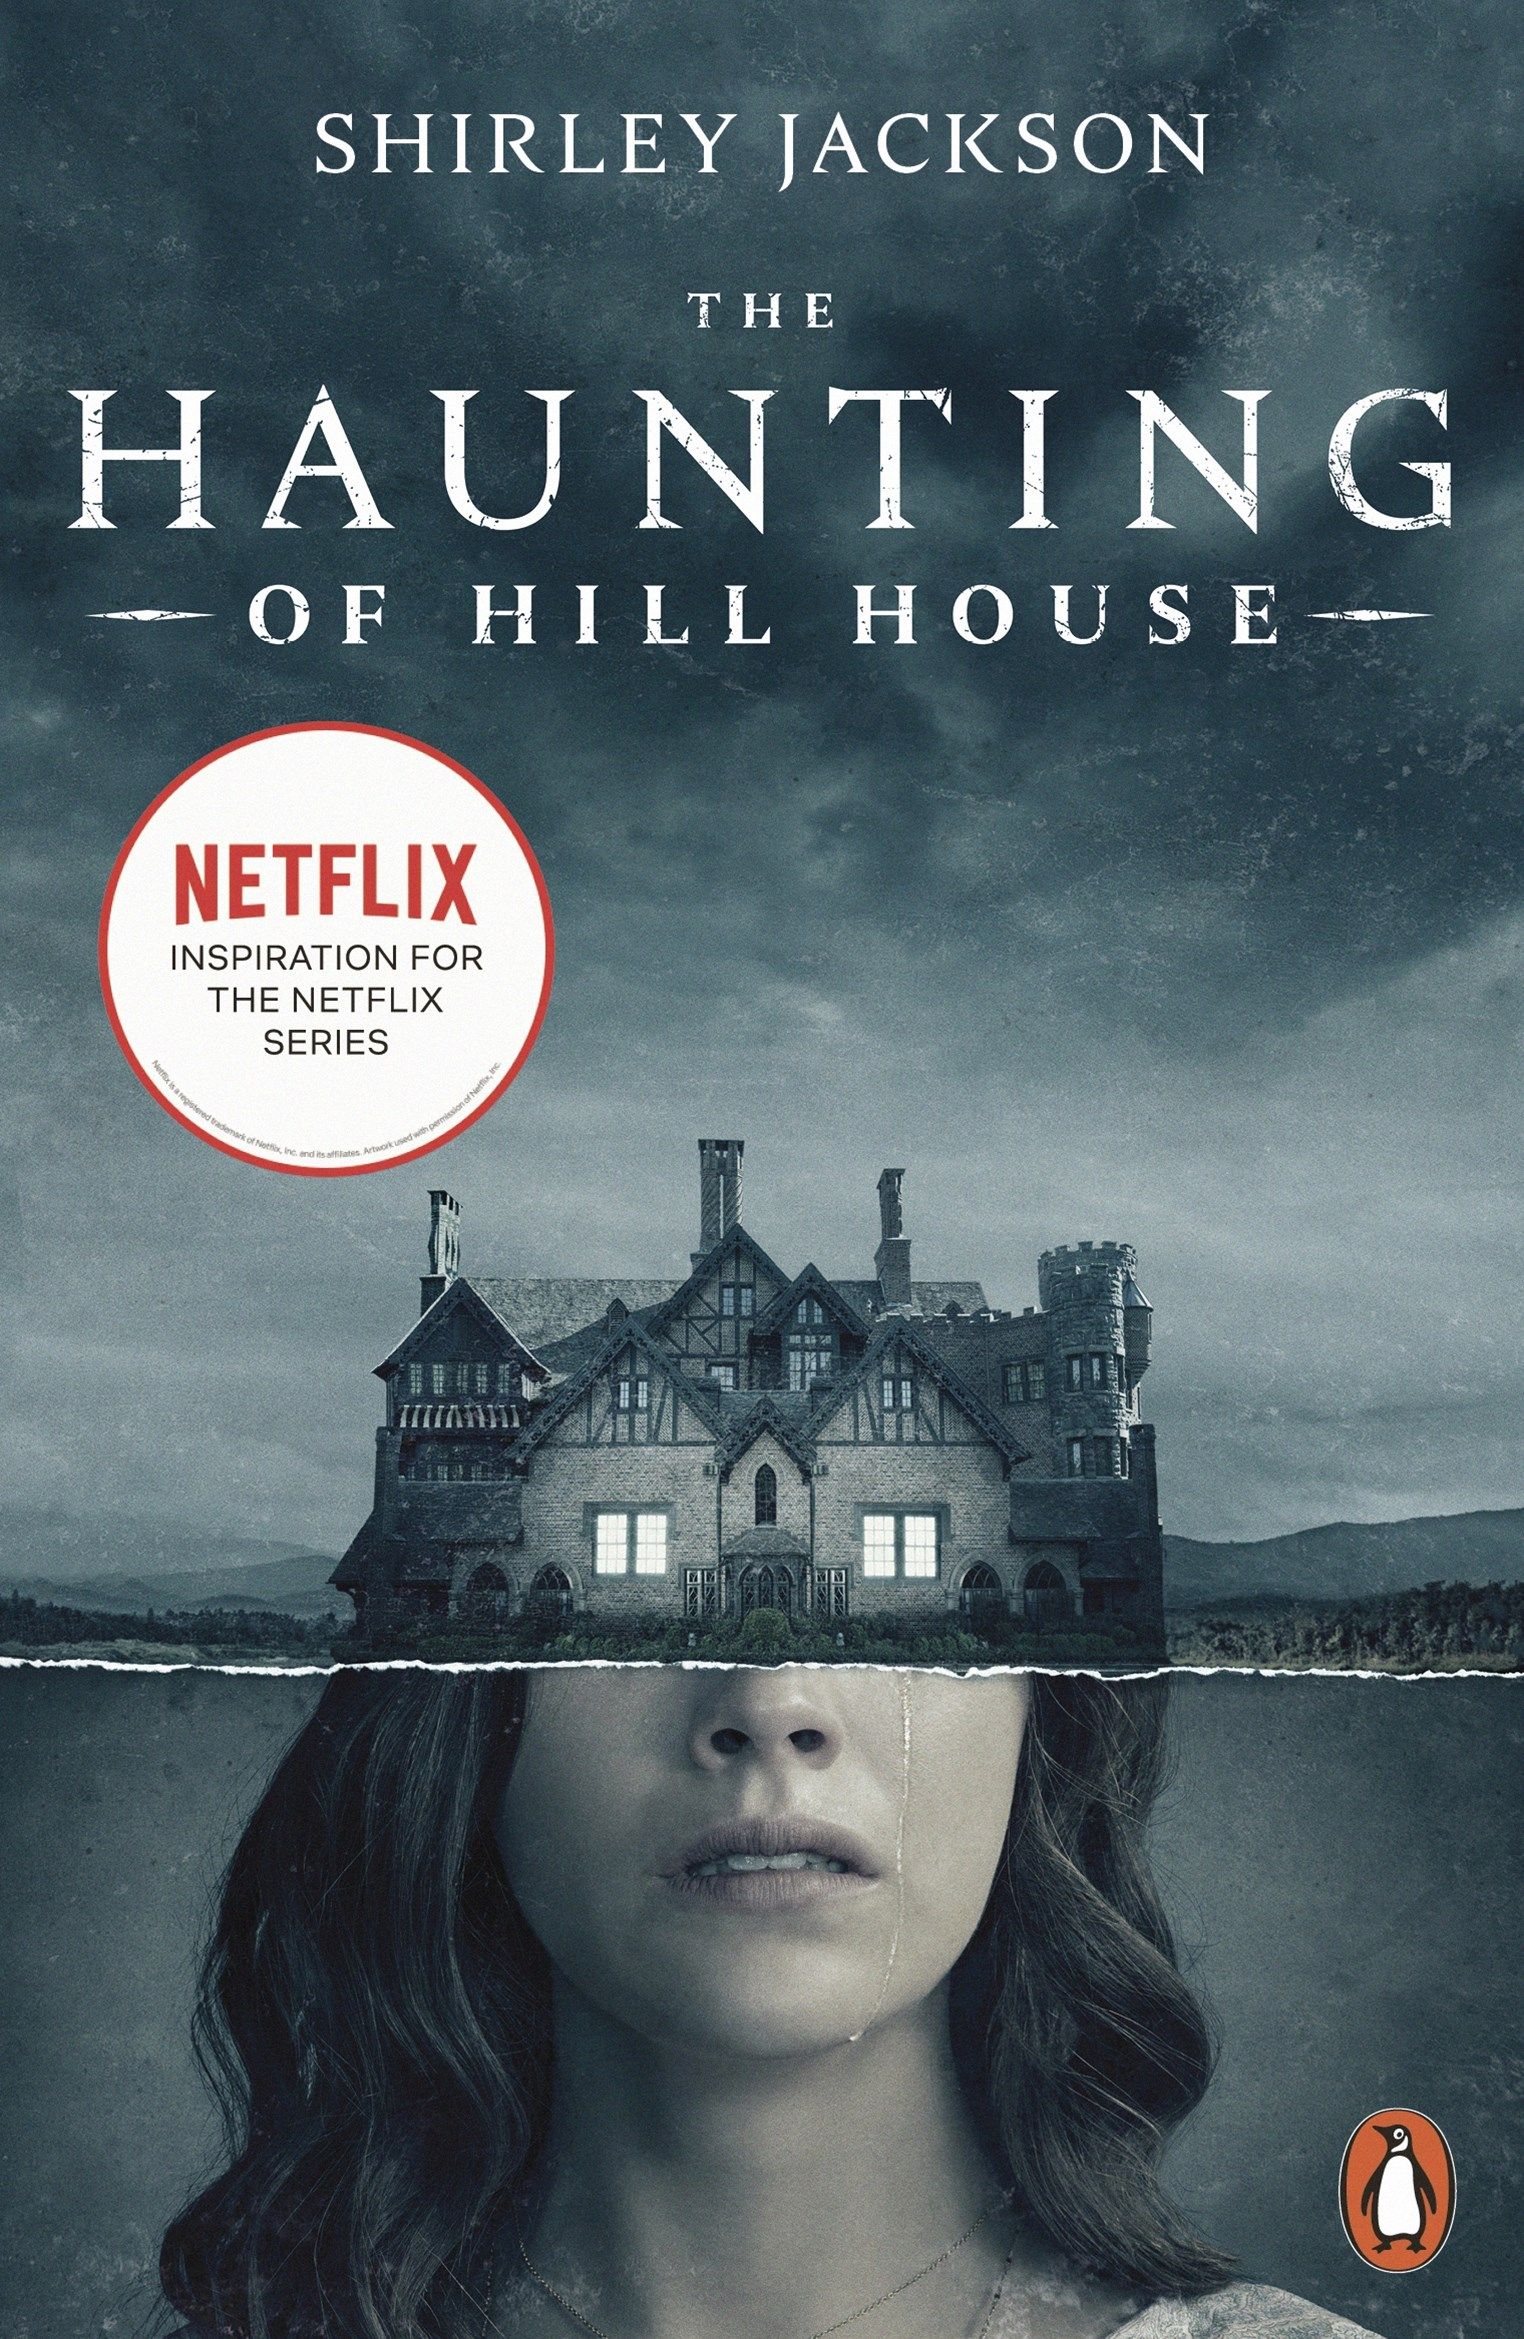 The Haunting Of Hill House Film Tie In